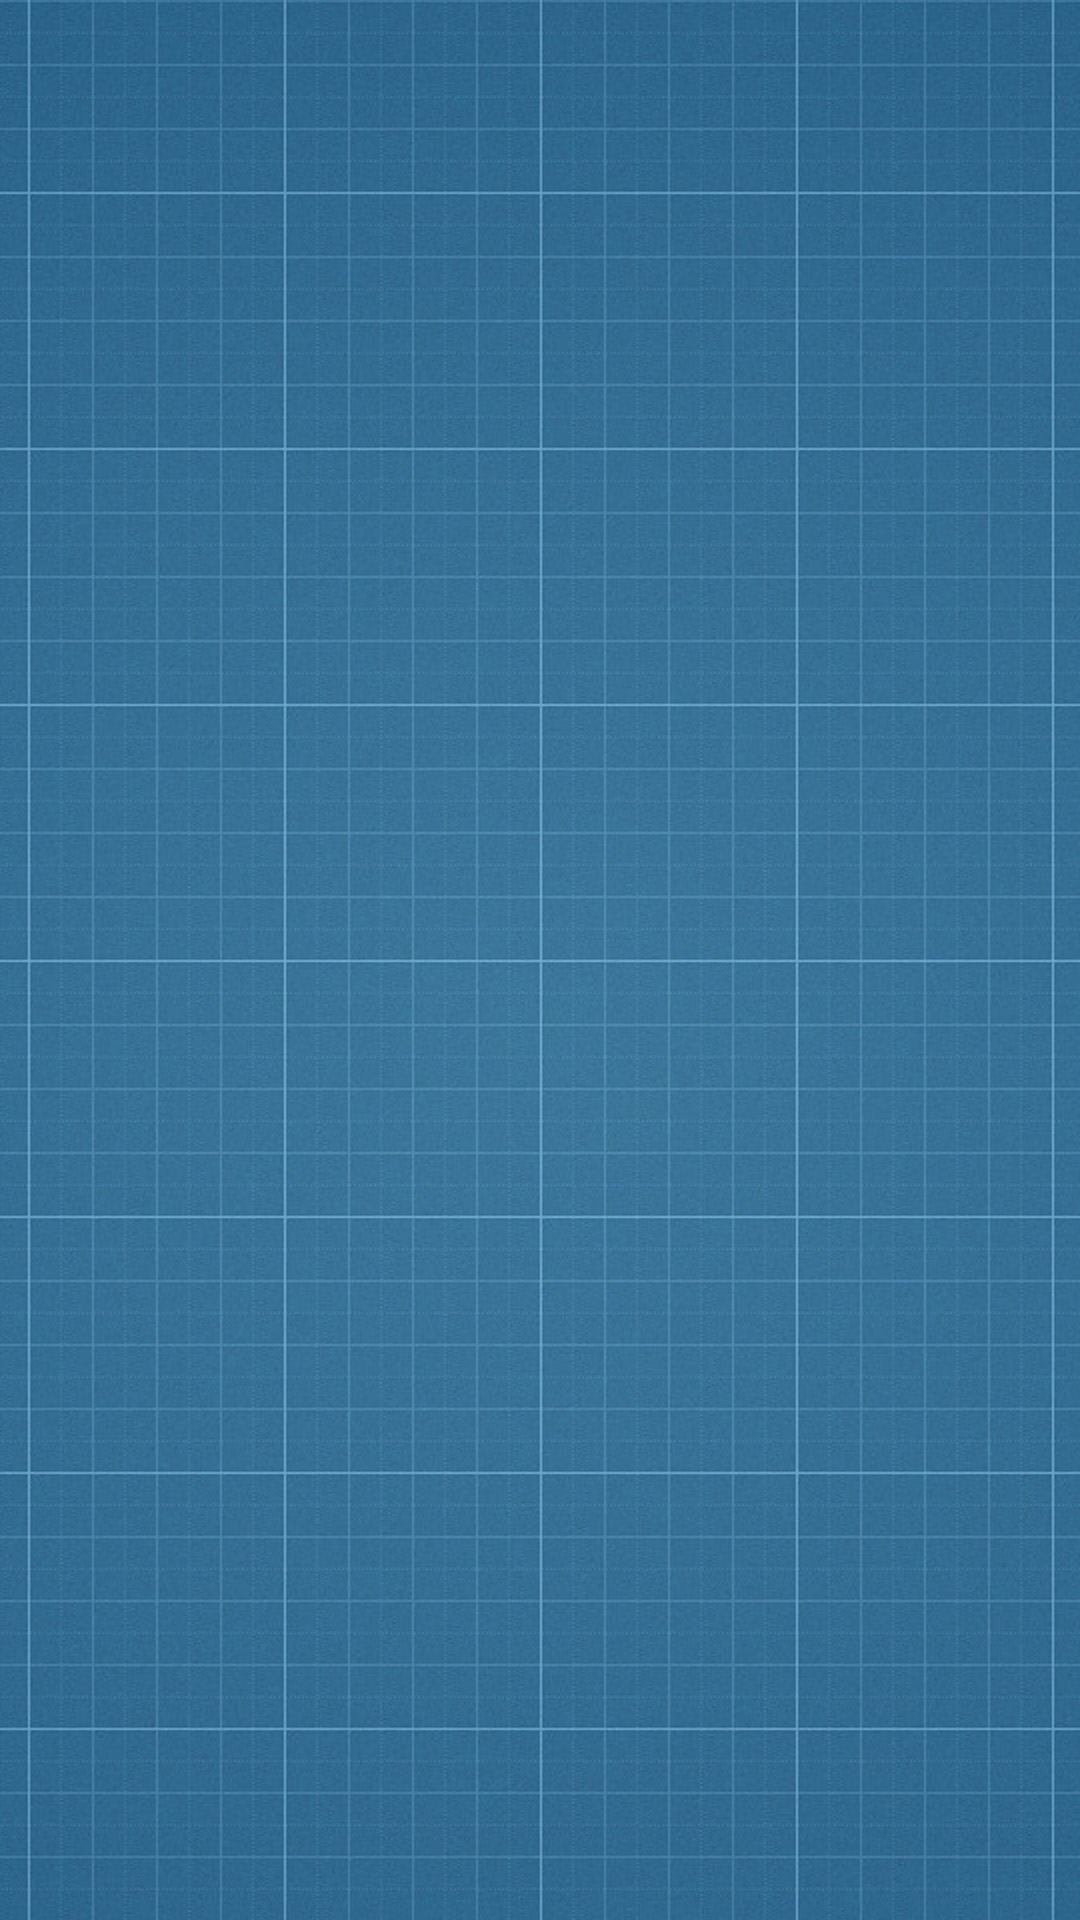 Background blueprint hd wallpaper iphone 6 plus for Blueprint app free